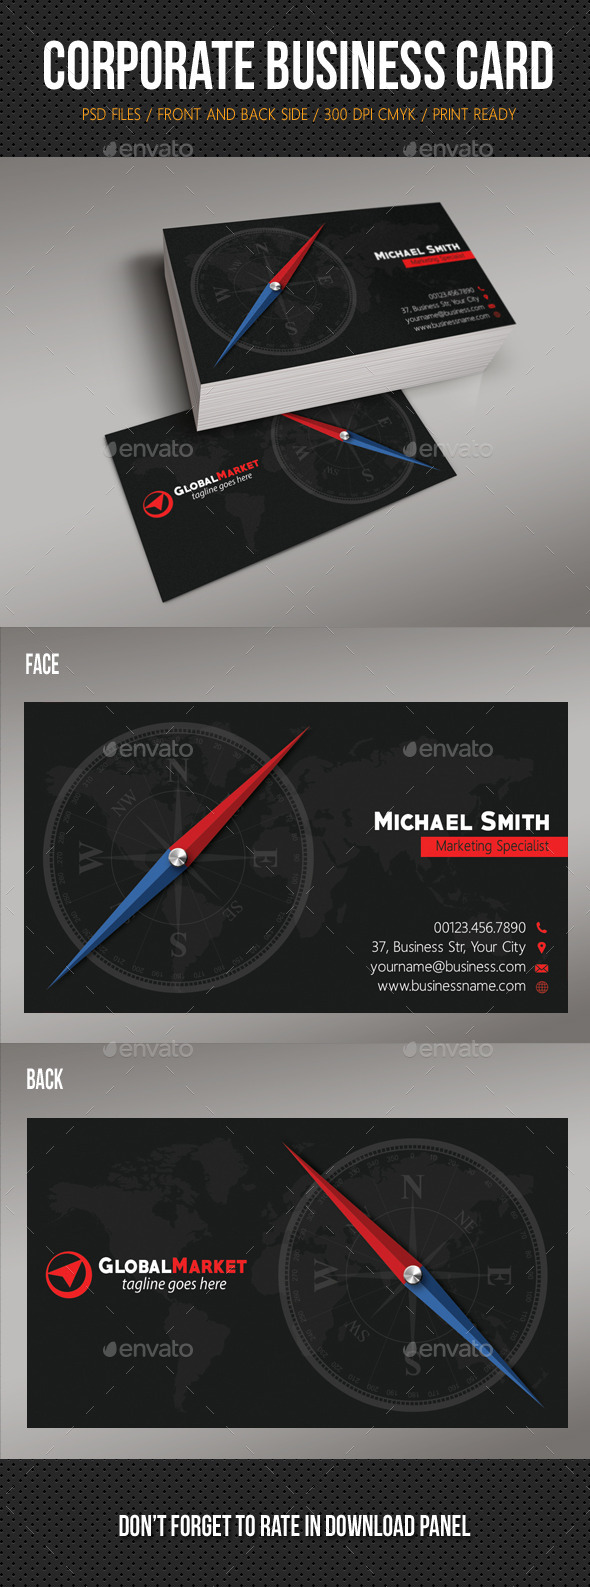 GraphicRiver Corporate Business Card 10 10979580